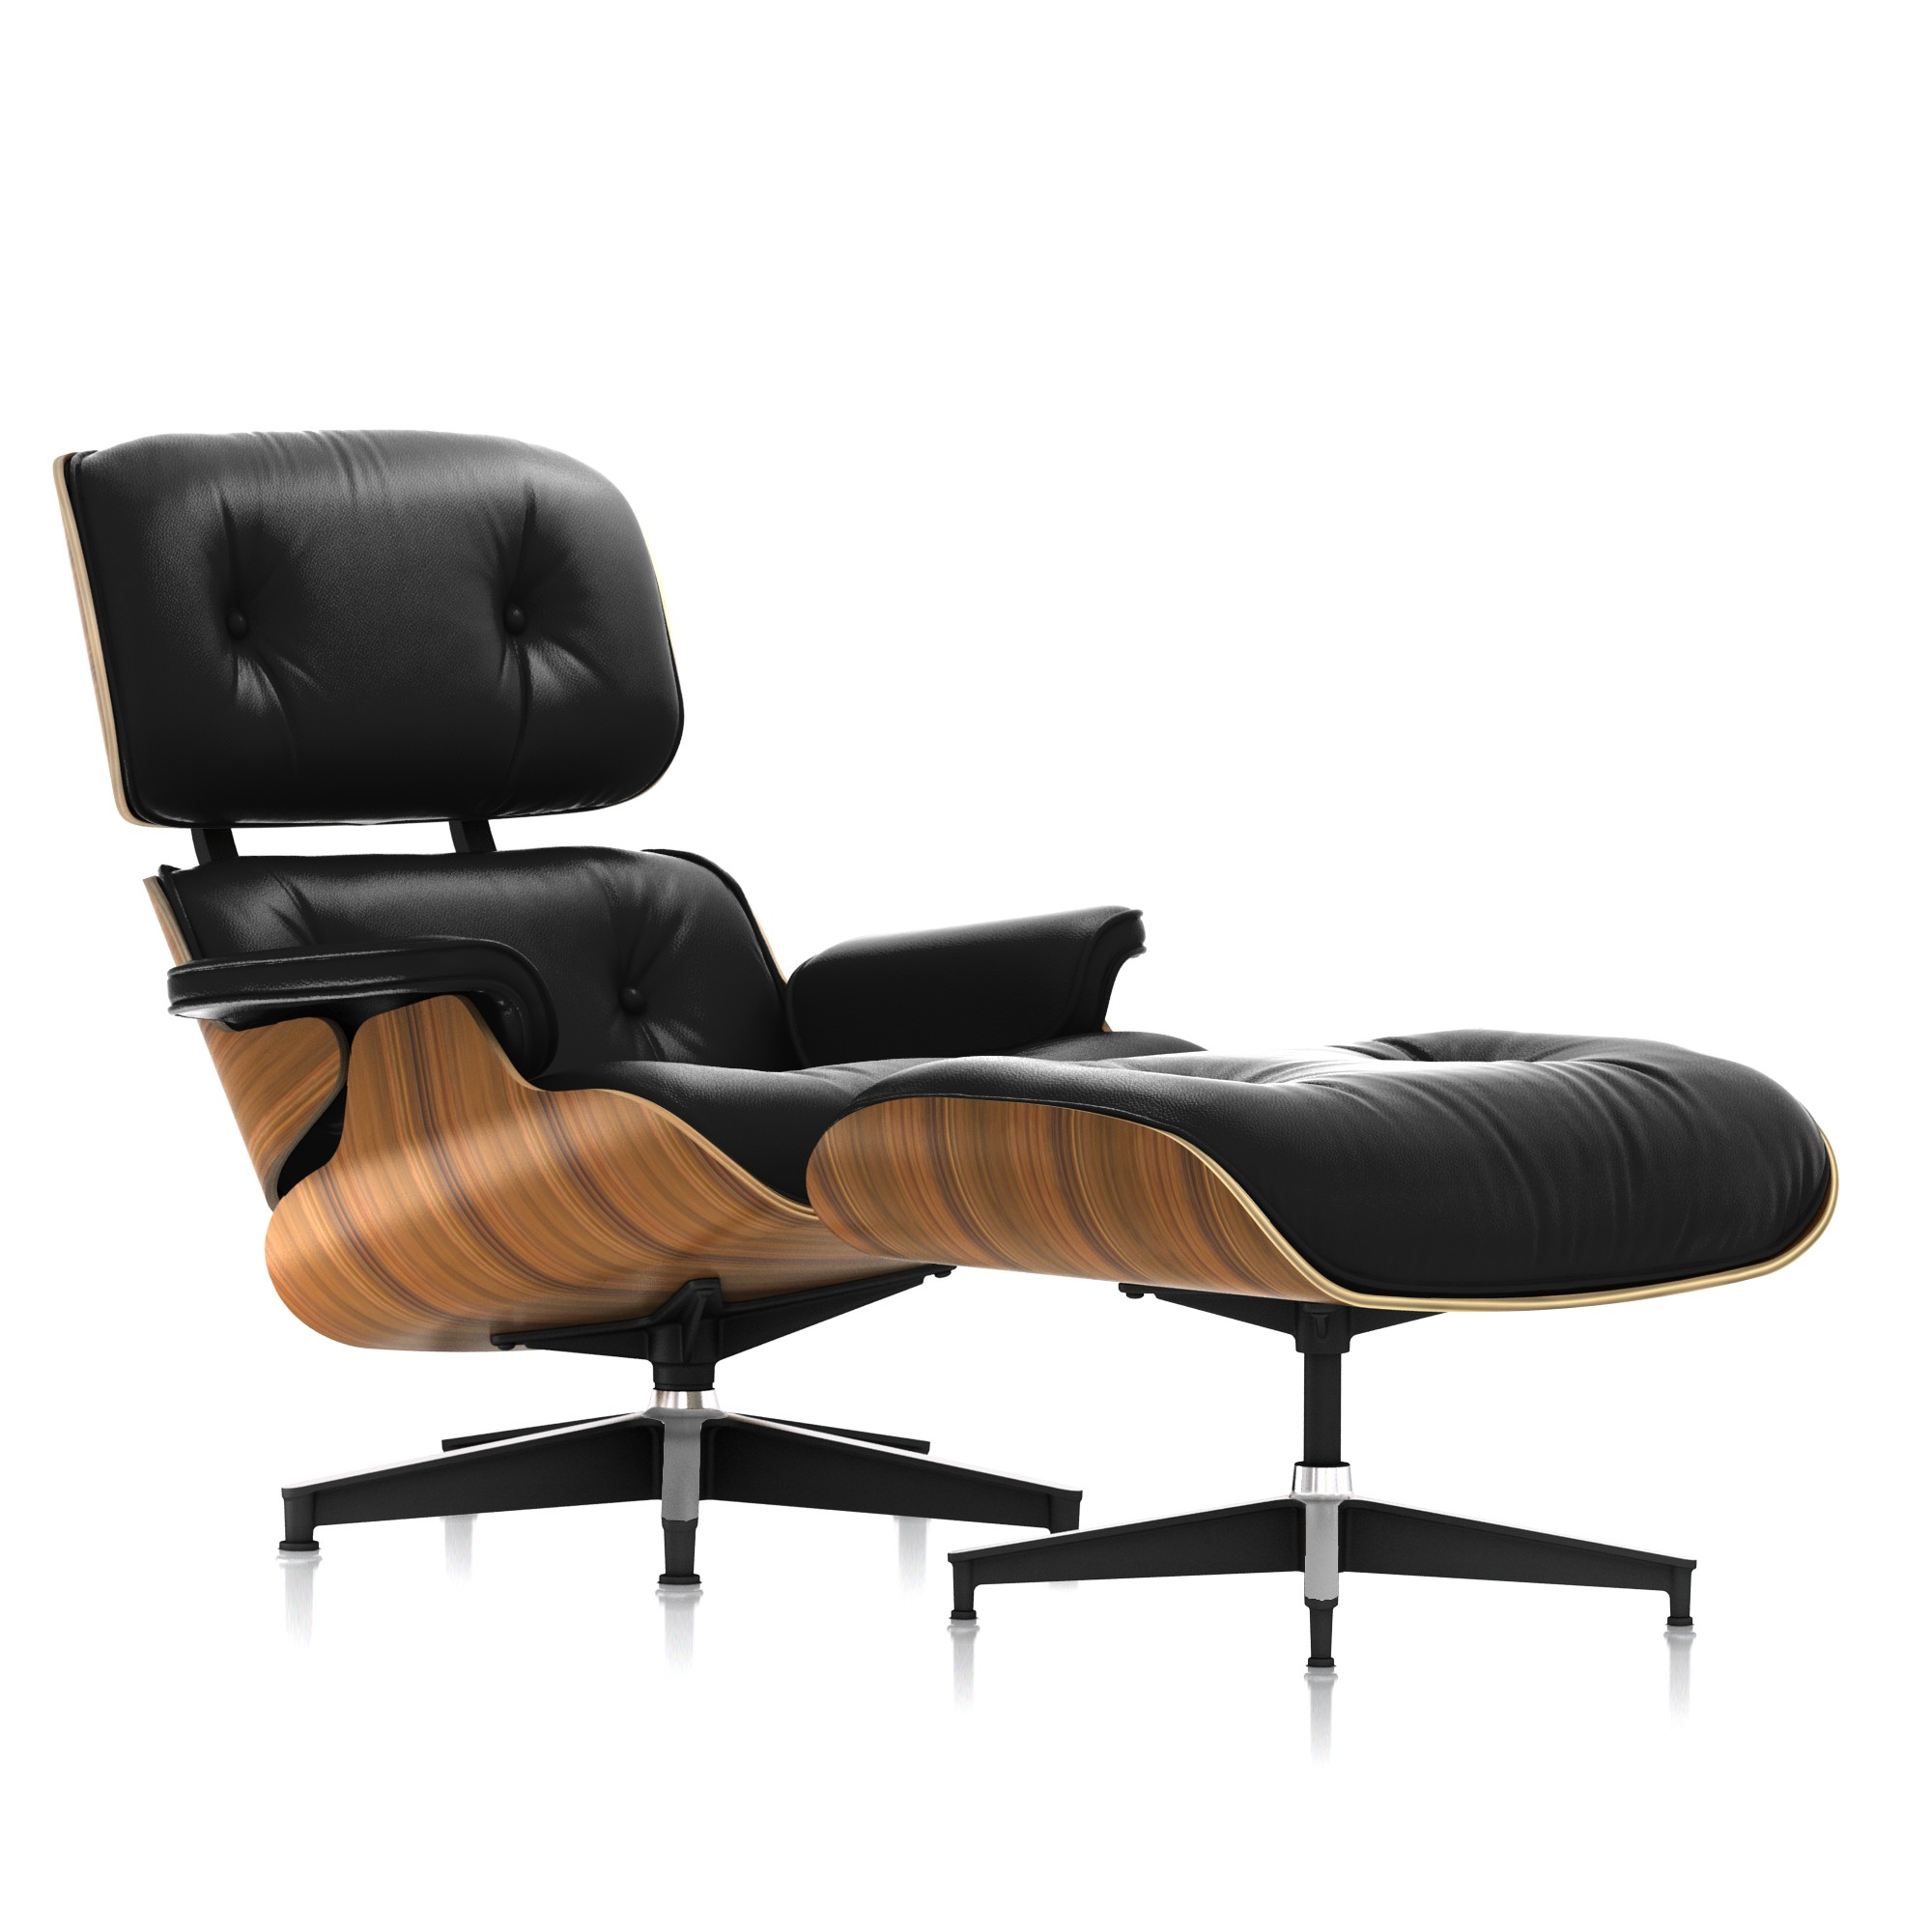 Eames Lounge Chair and Ottoman in Black Leather Tall by Herman Miller